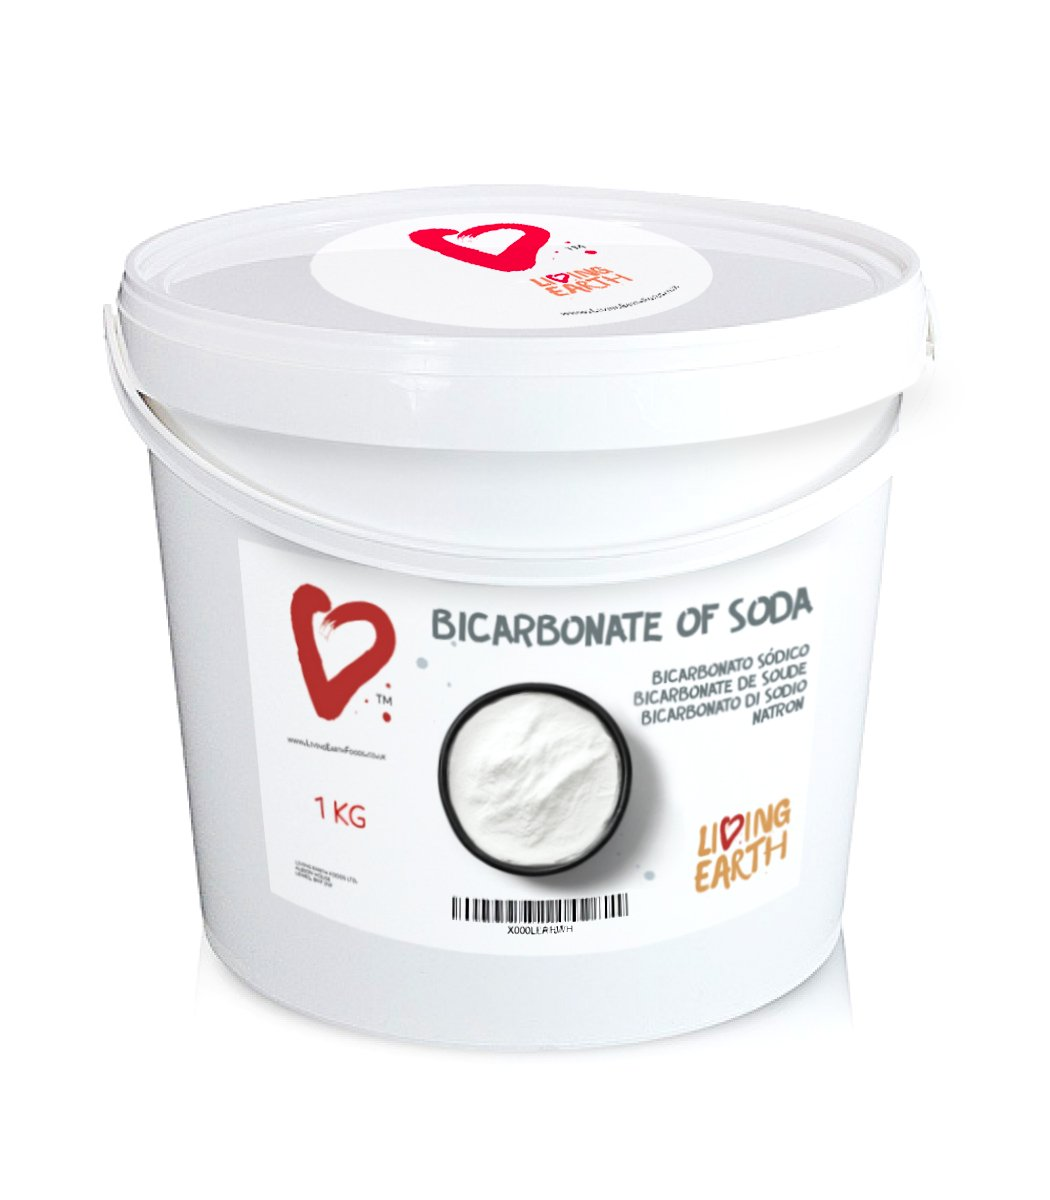 1KG Bicarbonate de soude – Living Earth – Suppose Une Alternative Excellente pour Le Nettoyage Quotidien et Soin corporel. Nettoyage ÉCOLOGIQUE, sans SUBSTANCES Toxiques ET ÉCONOMIQUE.